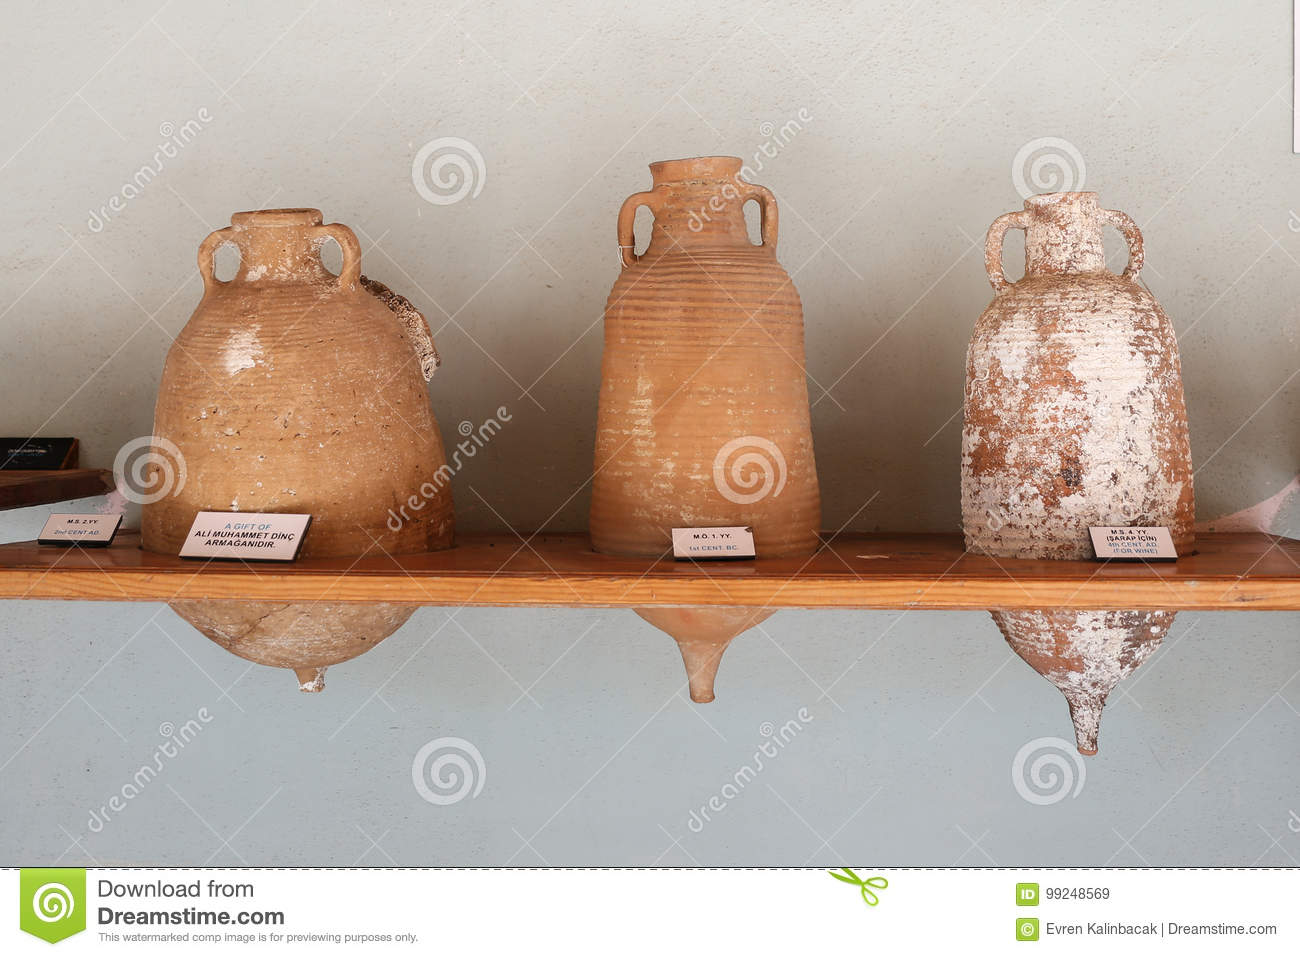 Amphoras in Bodrum Castle, Turkey